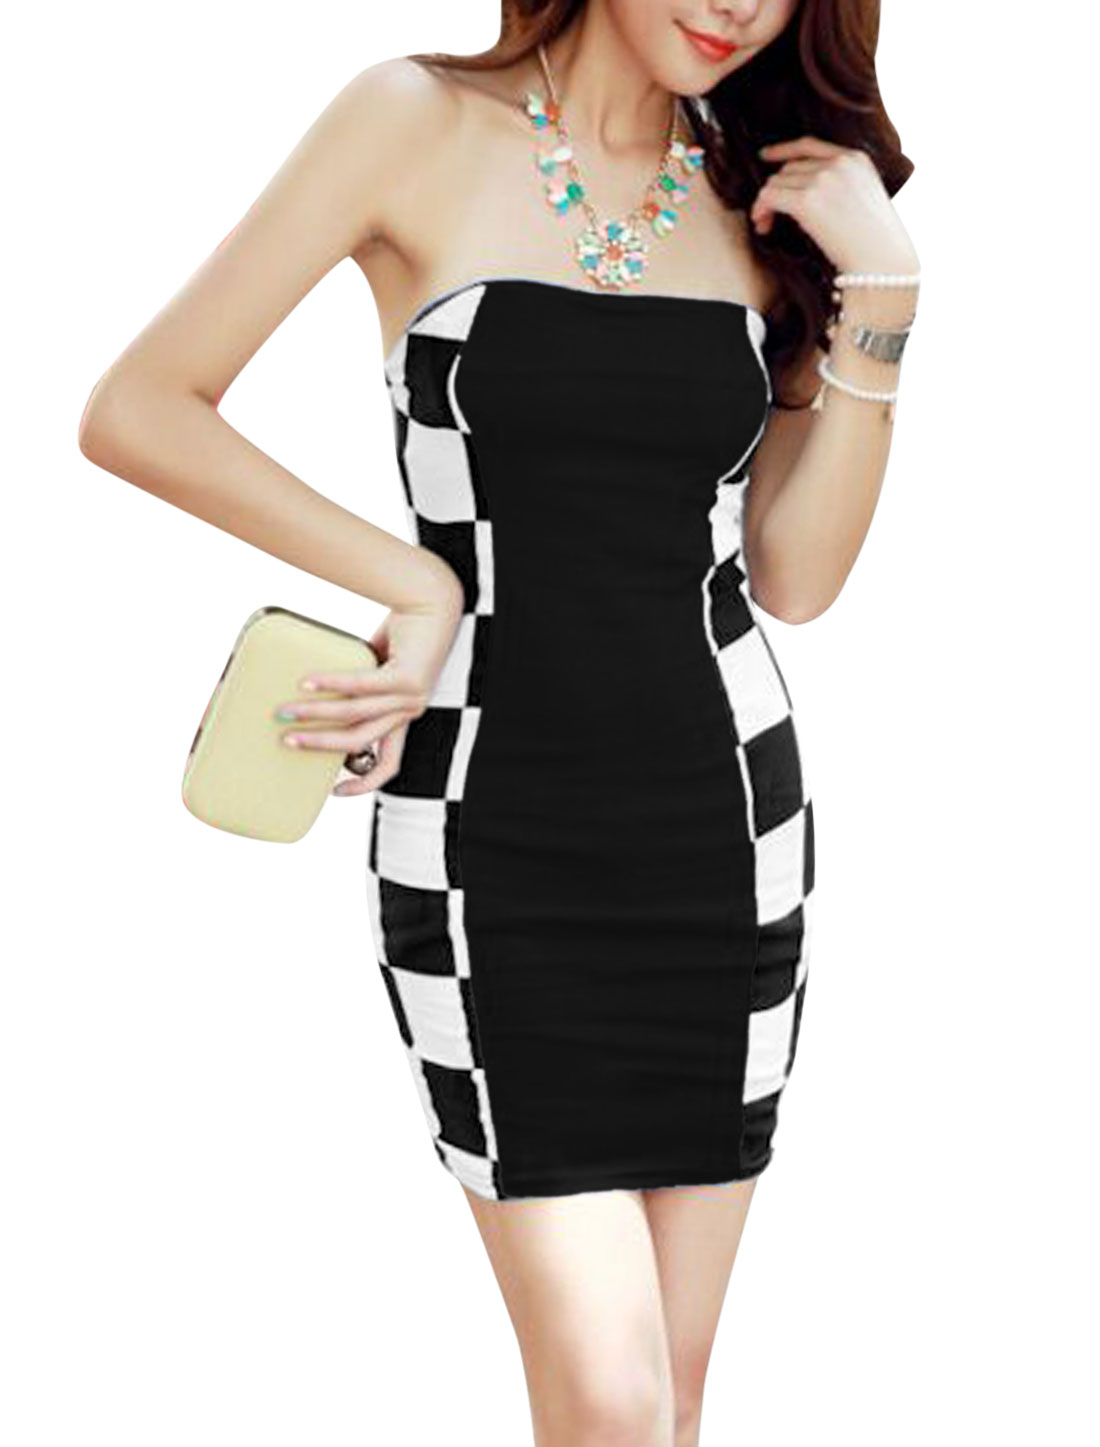 Lady Strapless Padded Bust Plaids Colorblock Sexy Sheath Dress Black XS